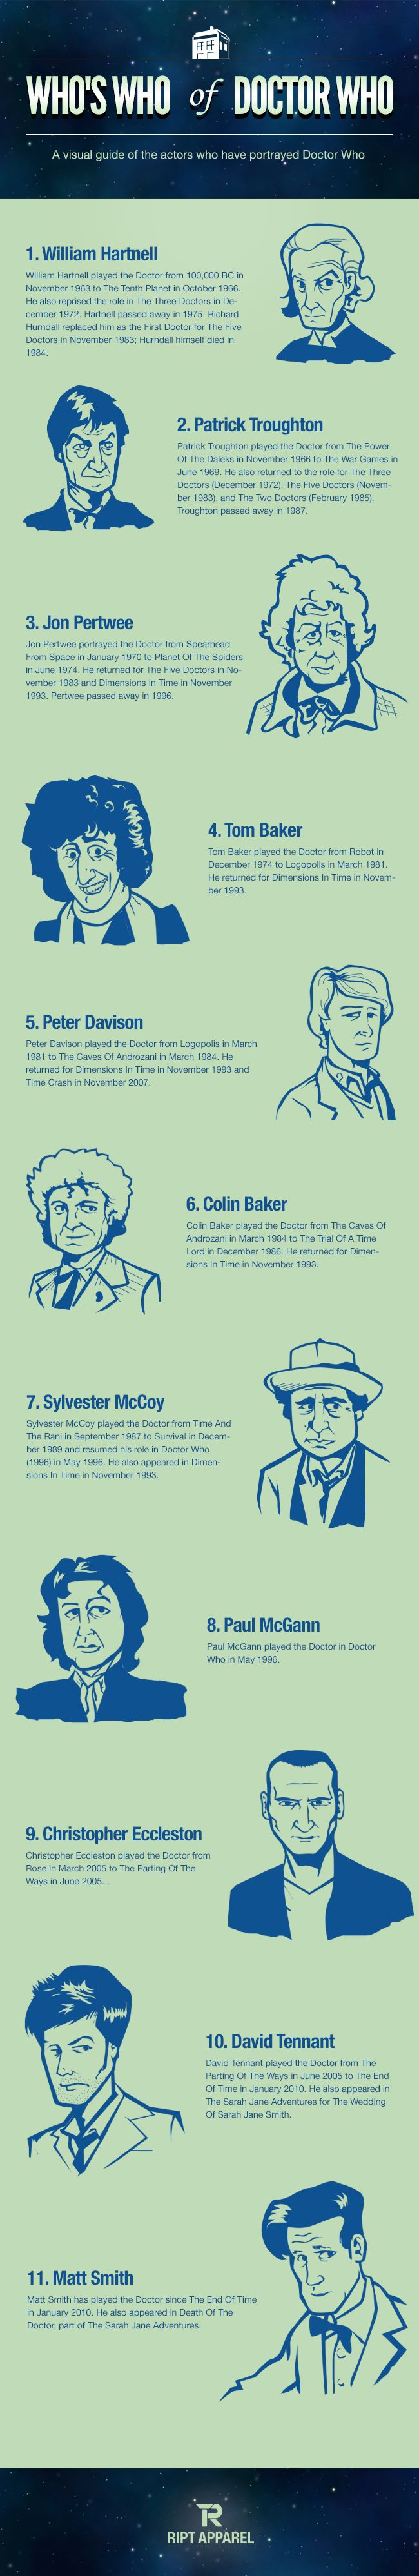 Who's Who of Doctor Who!